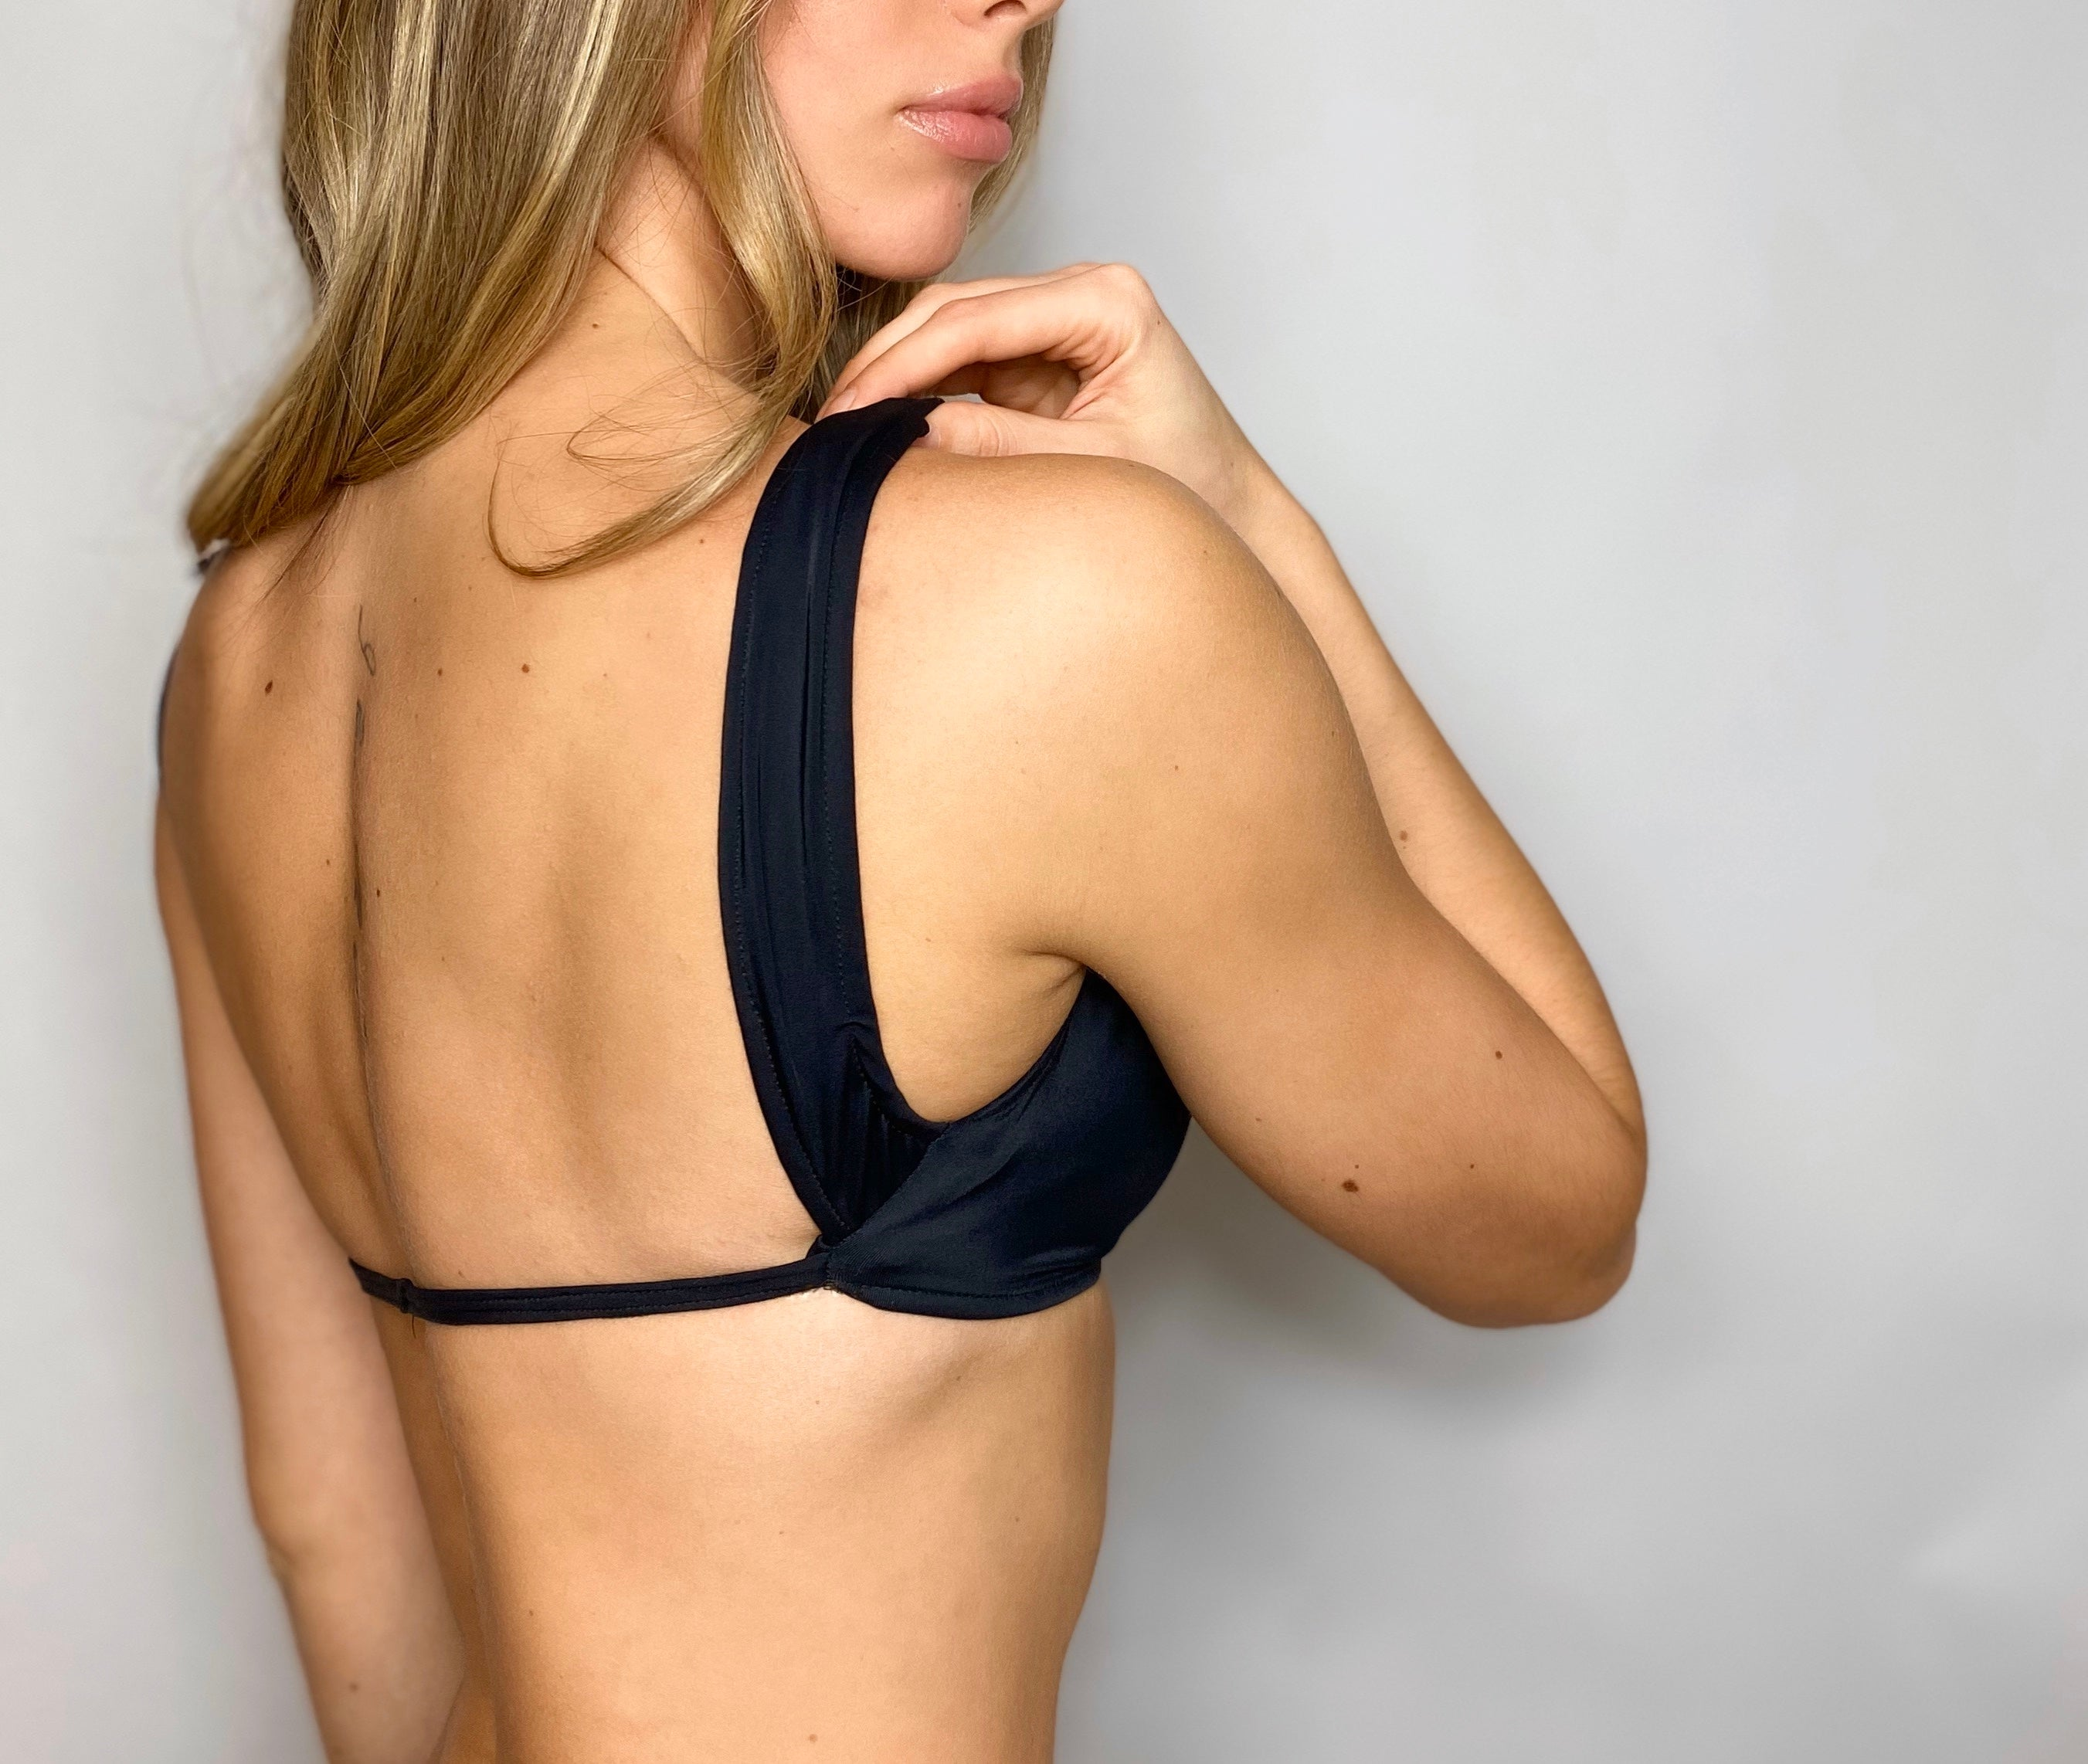 Thick strap over the shoulder bikini top with tie string back in color black